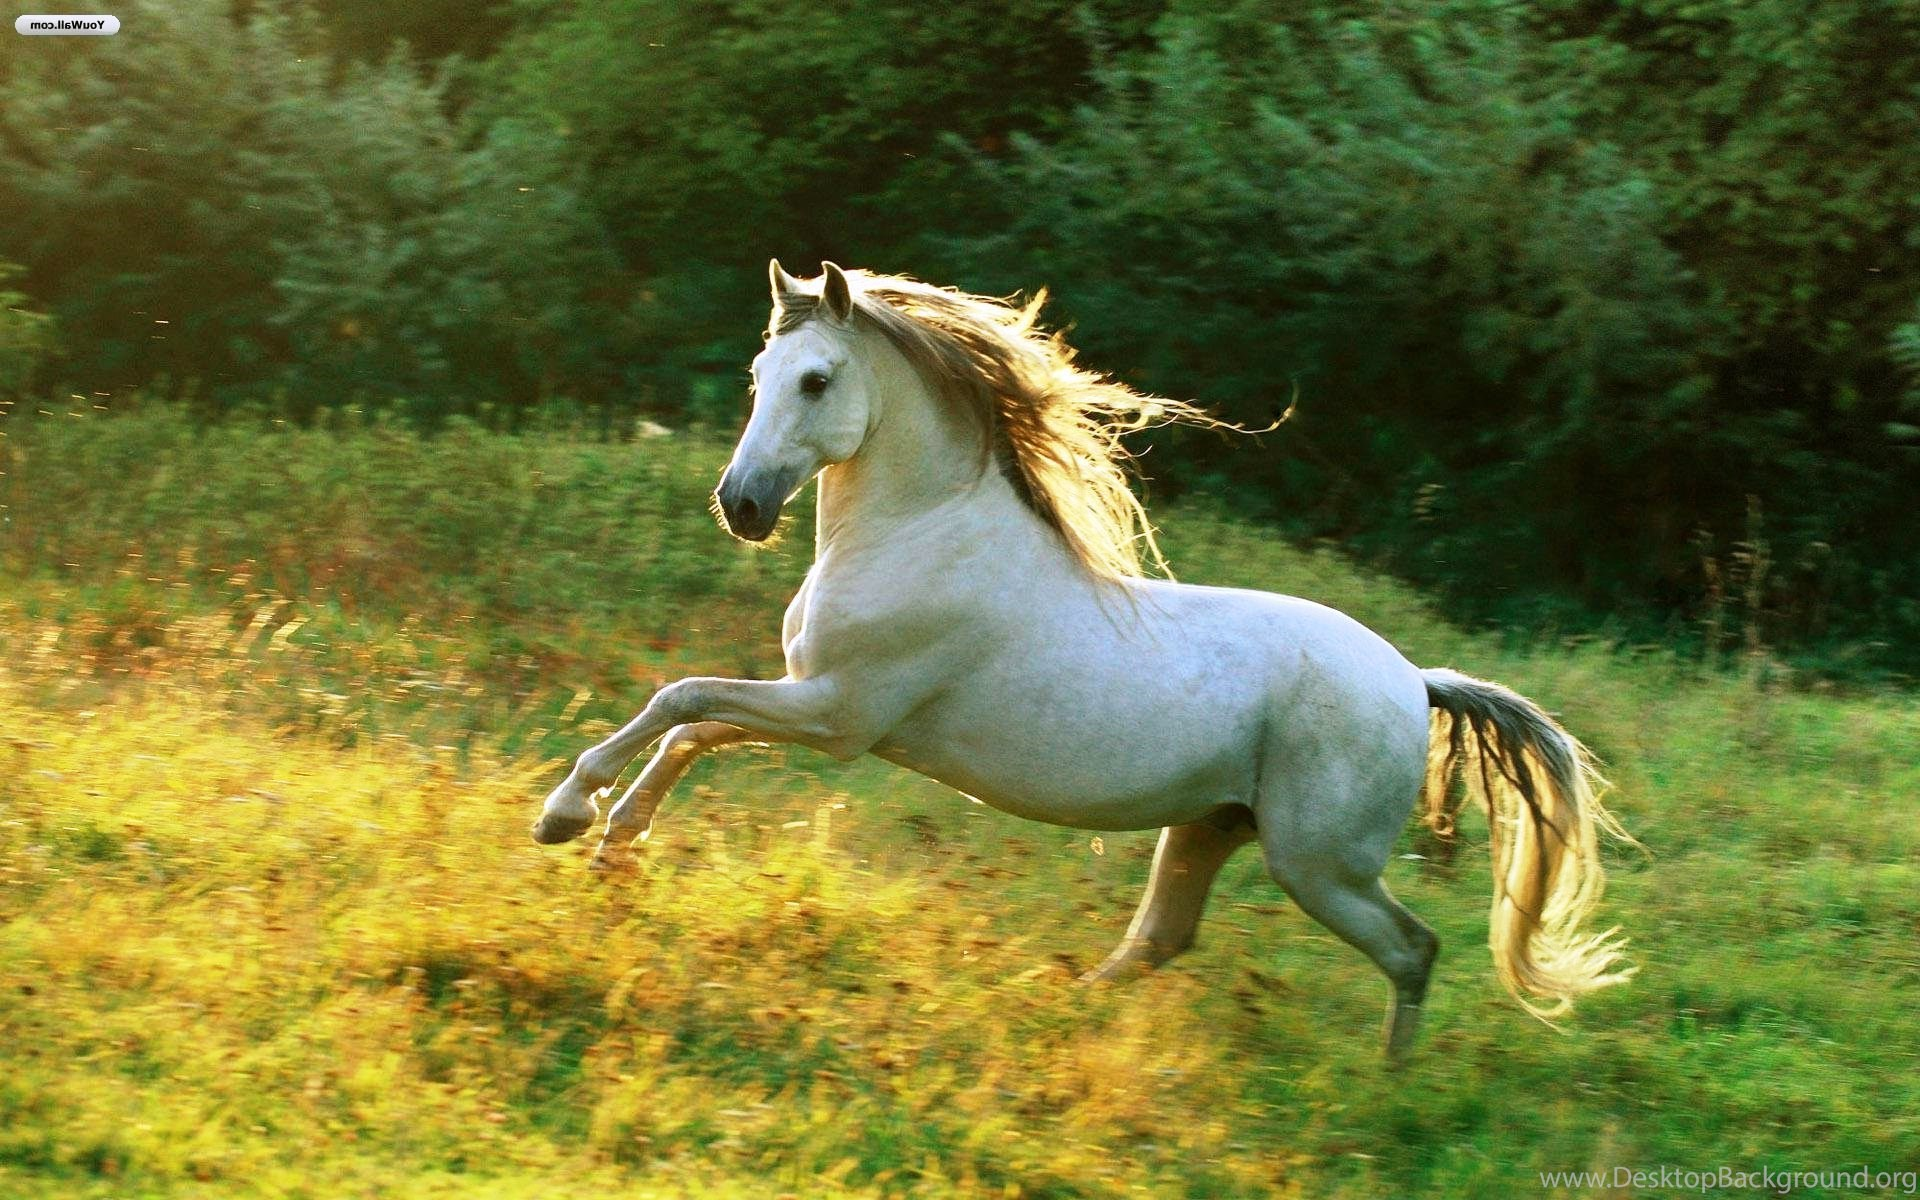 White Horse Running, 1920x1200 HD Wallpapers And FREE ... - photo#20